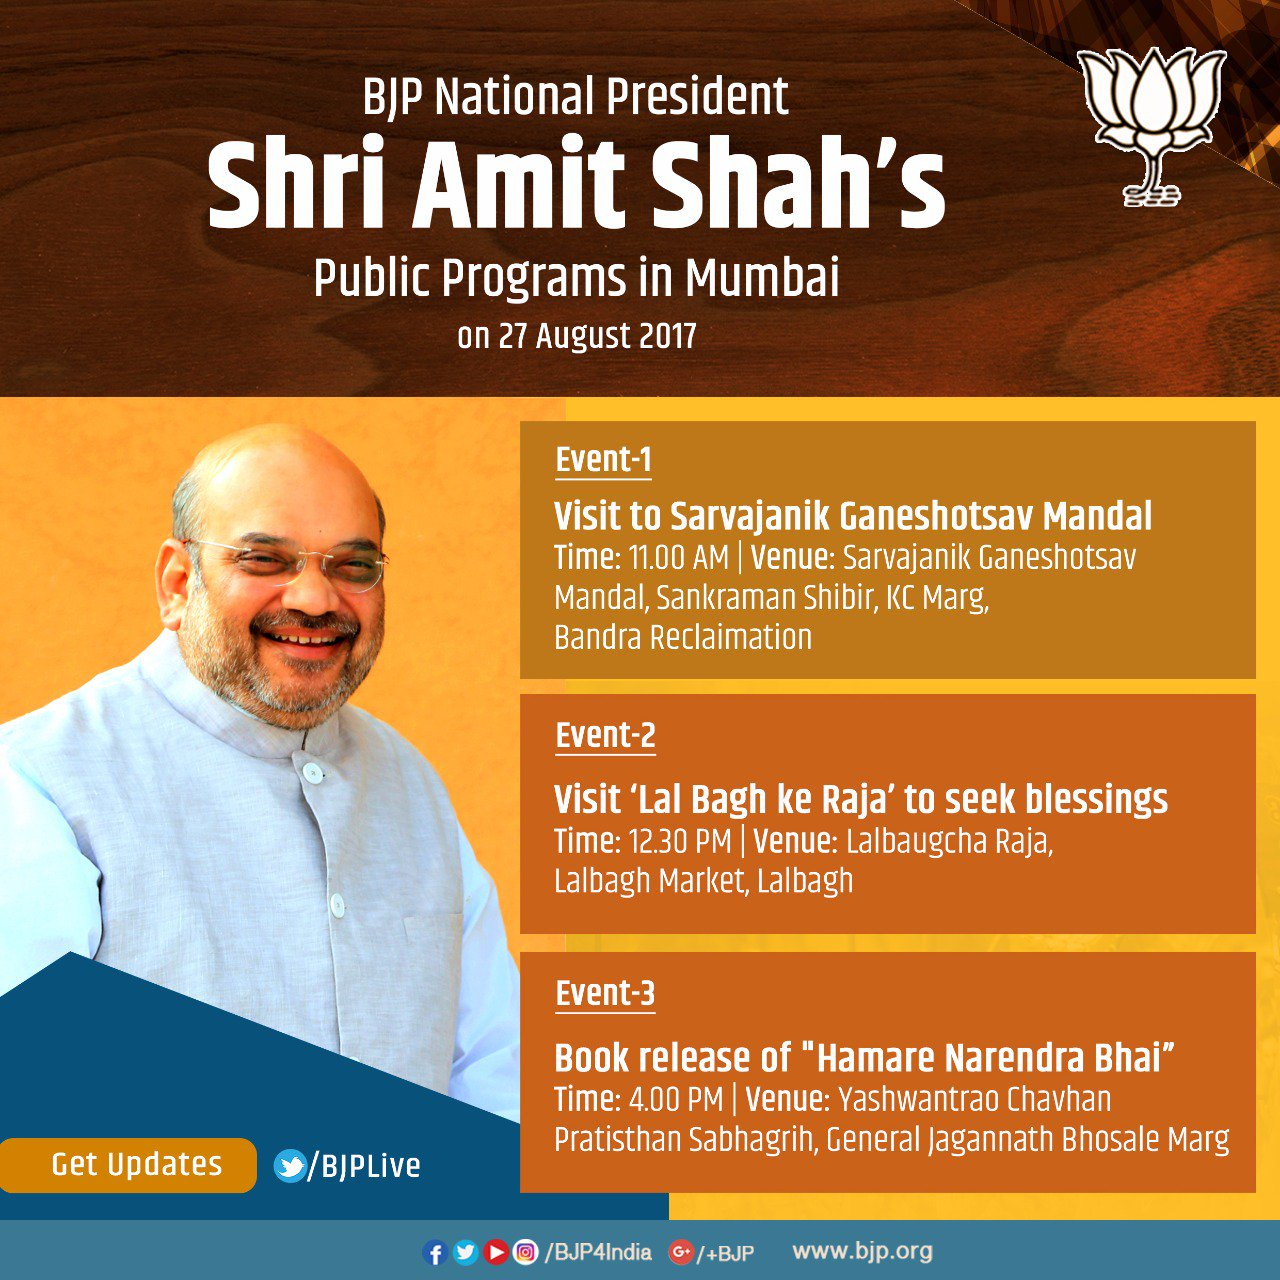 Schedule of BJP National President Shri @AmitShah's public programs in Mumbai on 27 Aug 2017. Get all live updates at @BJP4India & @BJPLive https://t.co/KfWLY6osUv